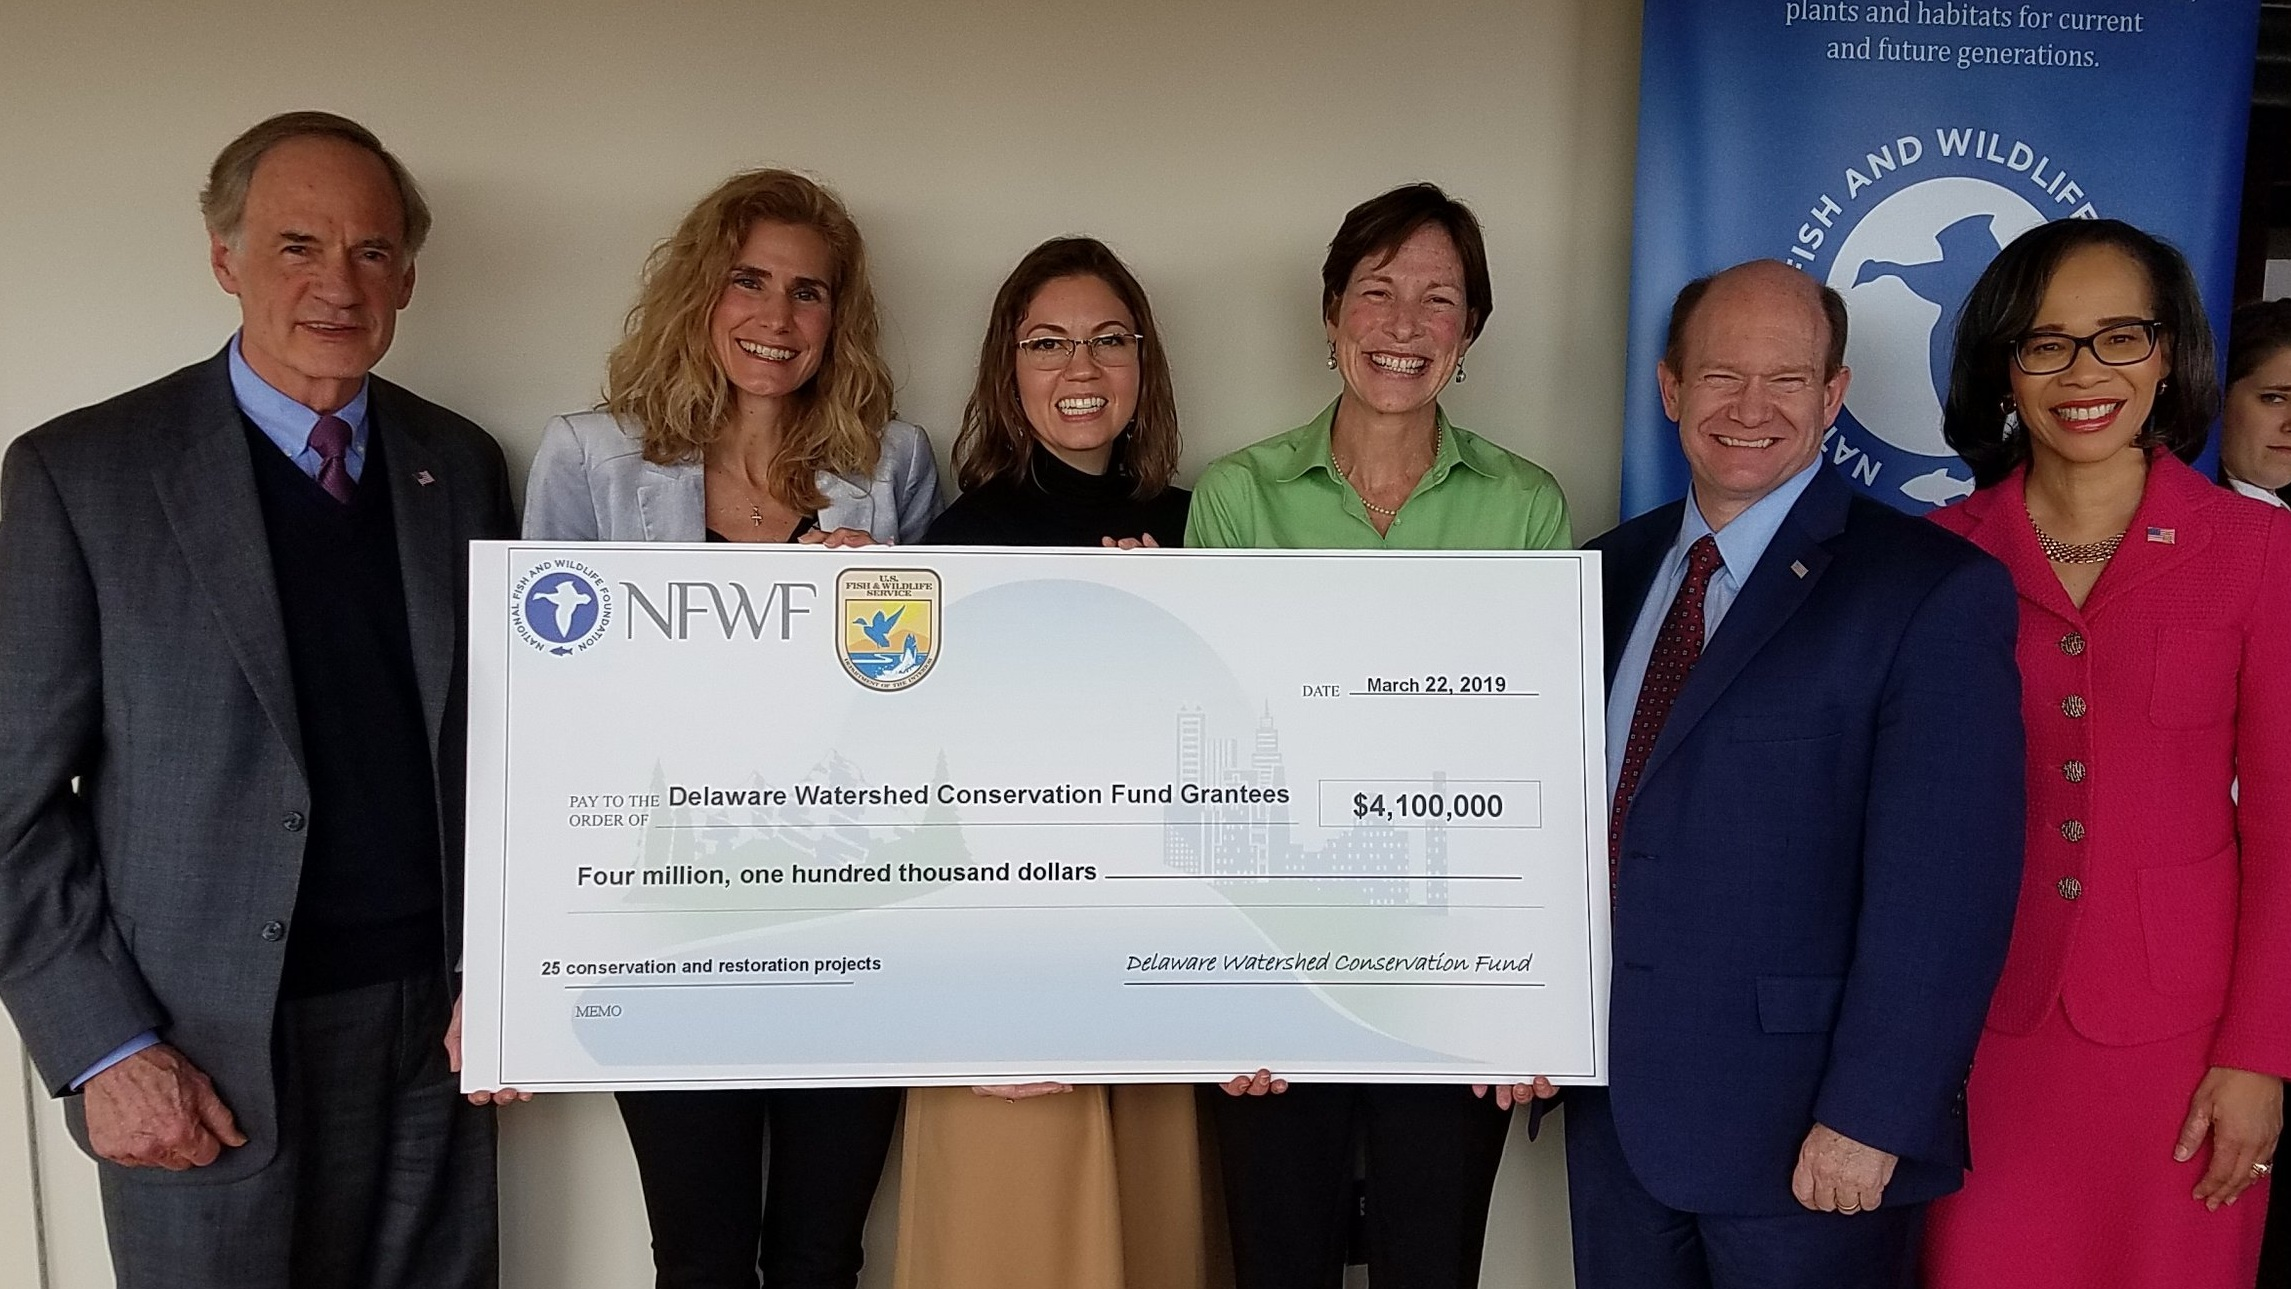 Senator Coons, Senator Carper, Representative Lisa Blunt Rochester, USFWS, and NFWF at the March 22, 2019 press conference in Wilmington, DE.